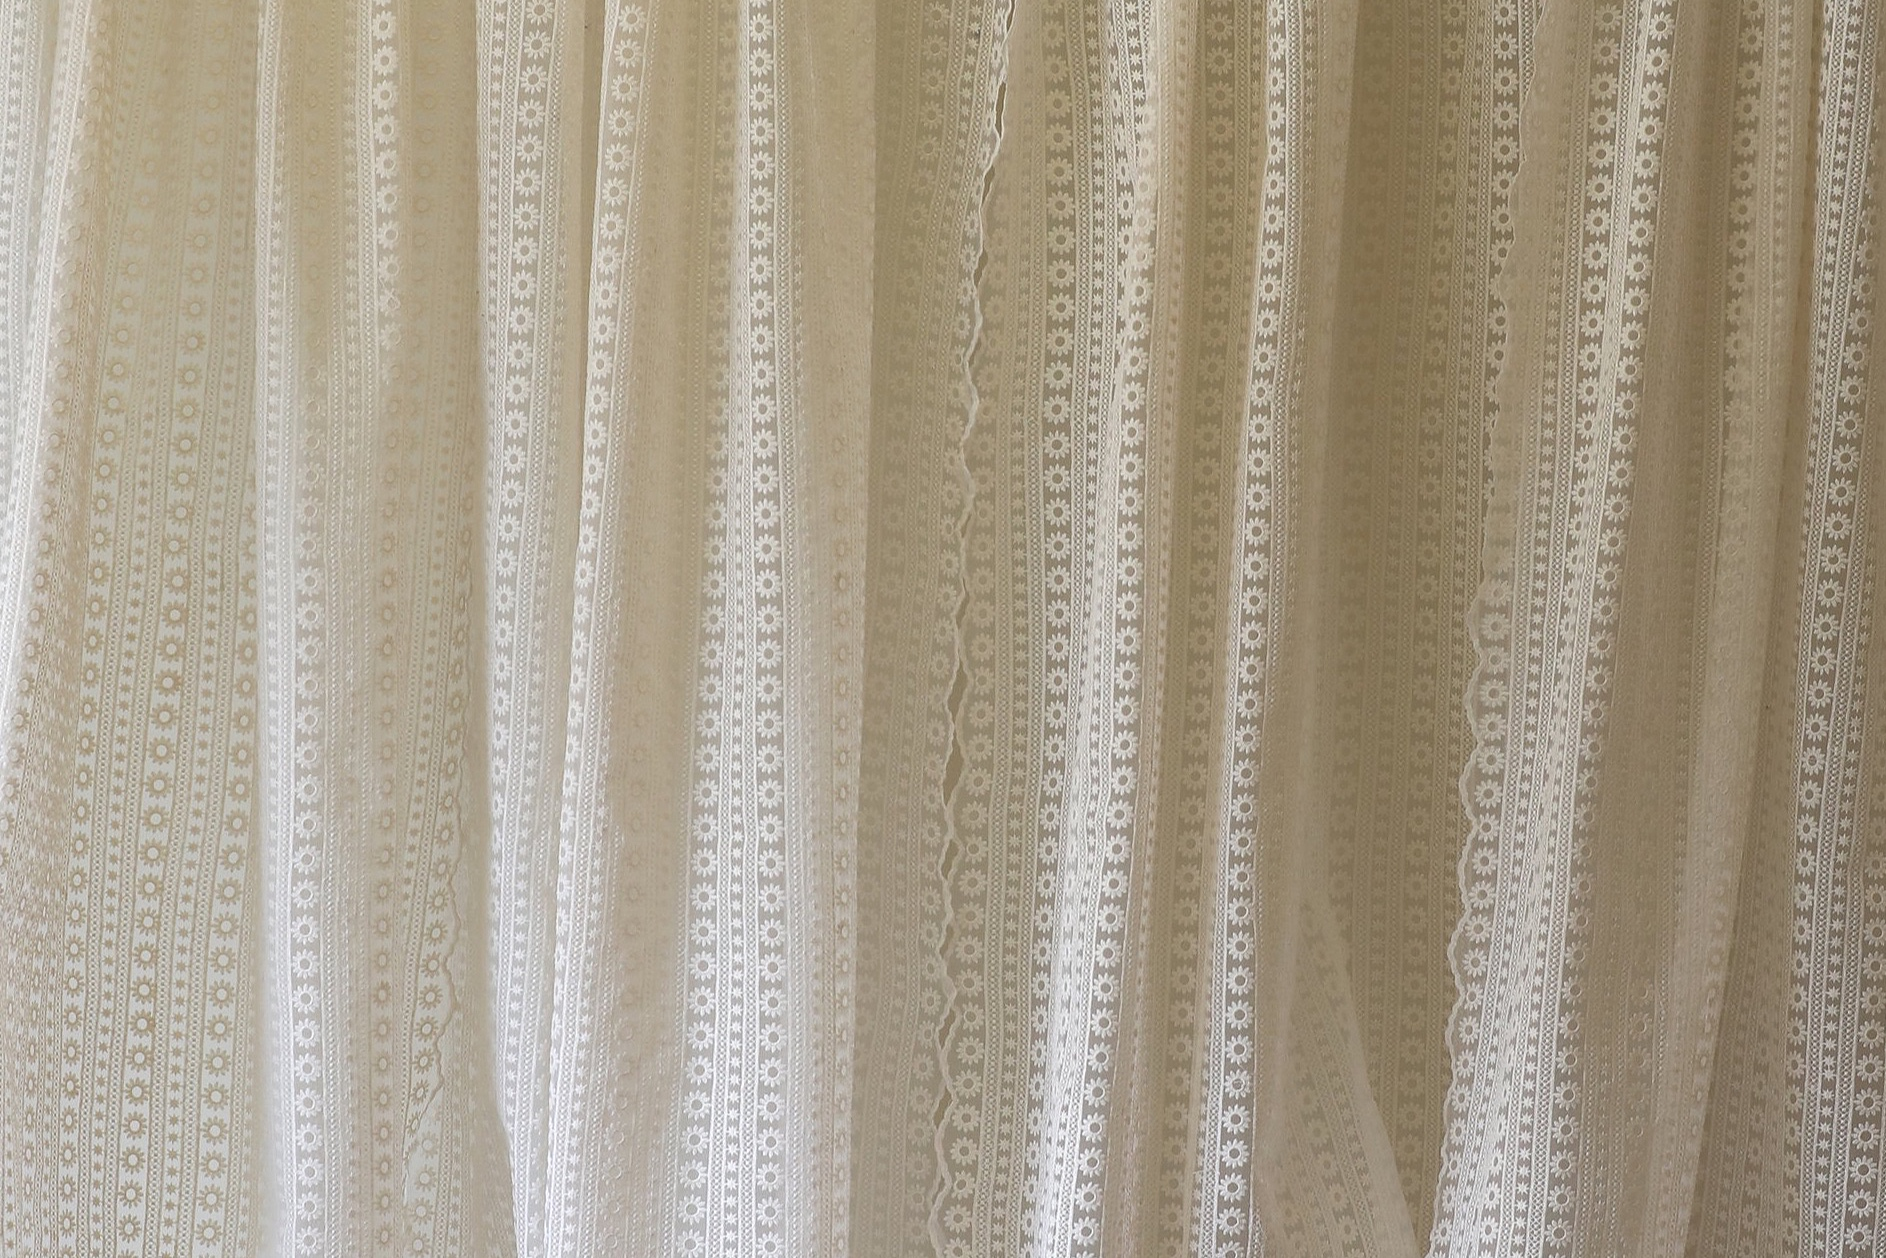 Boho Lace Curtain